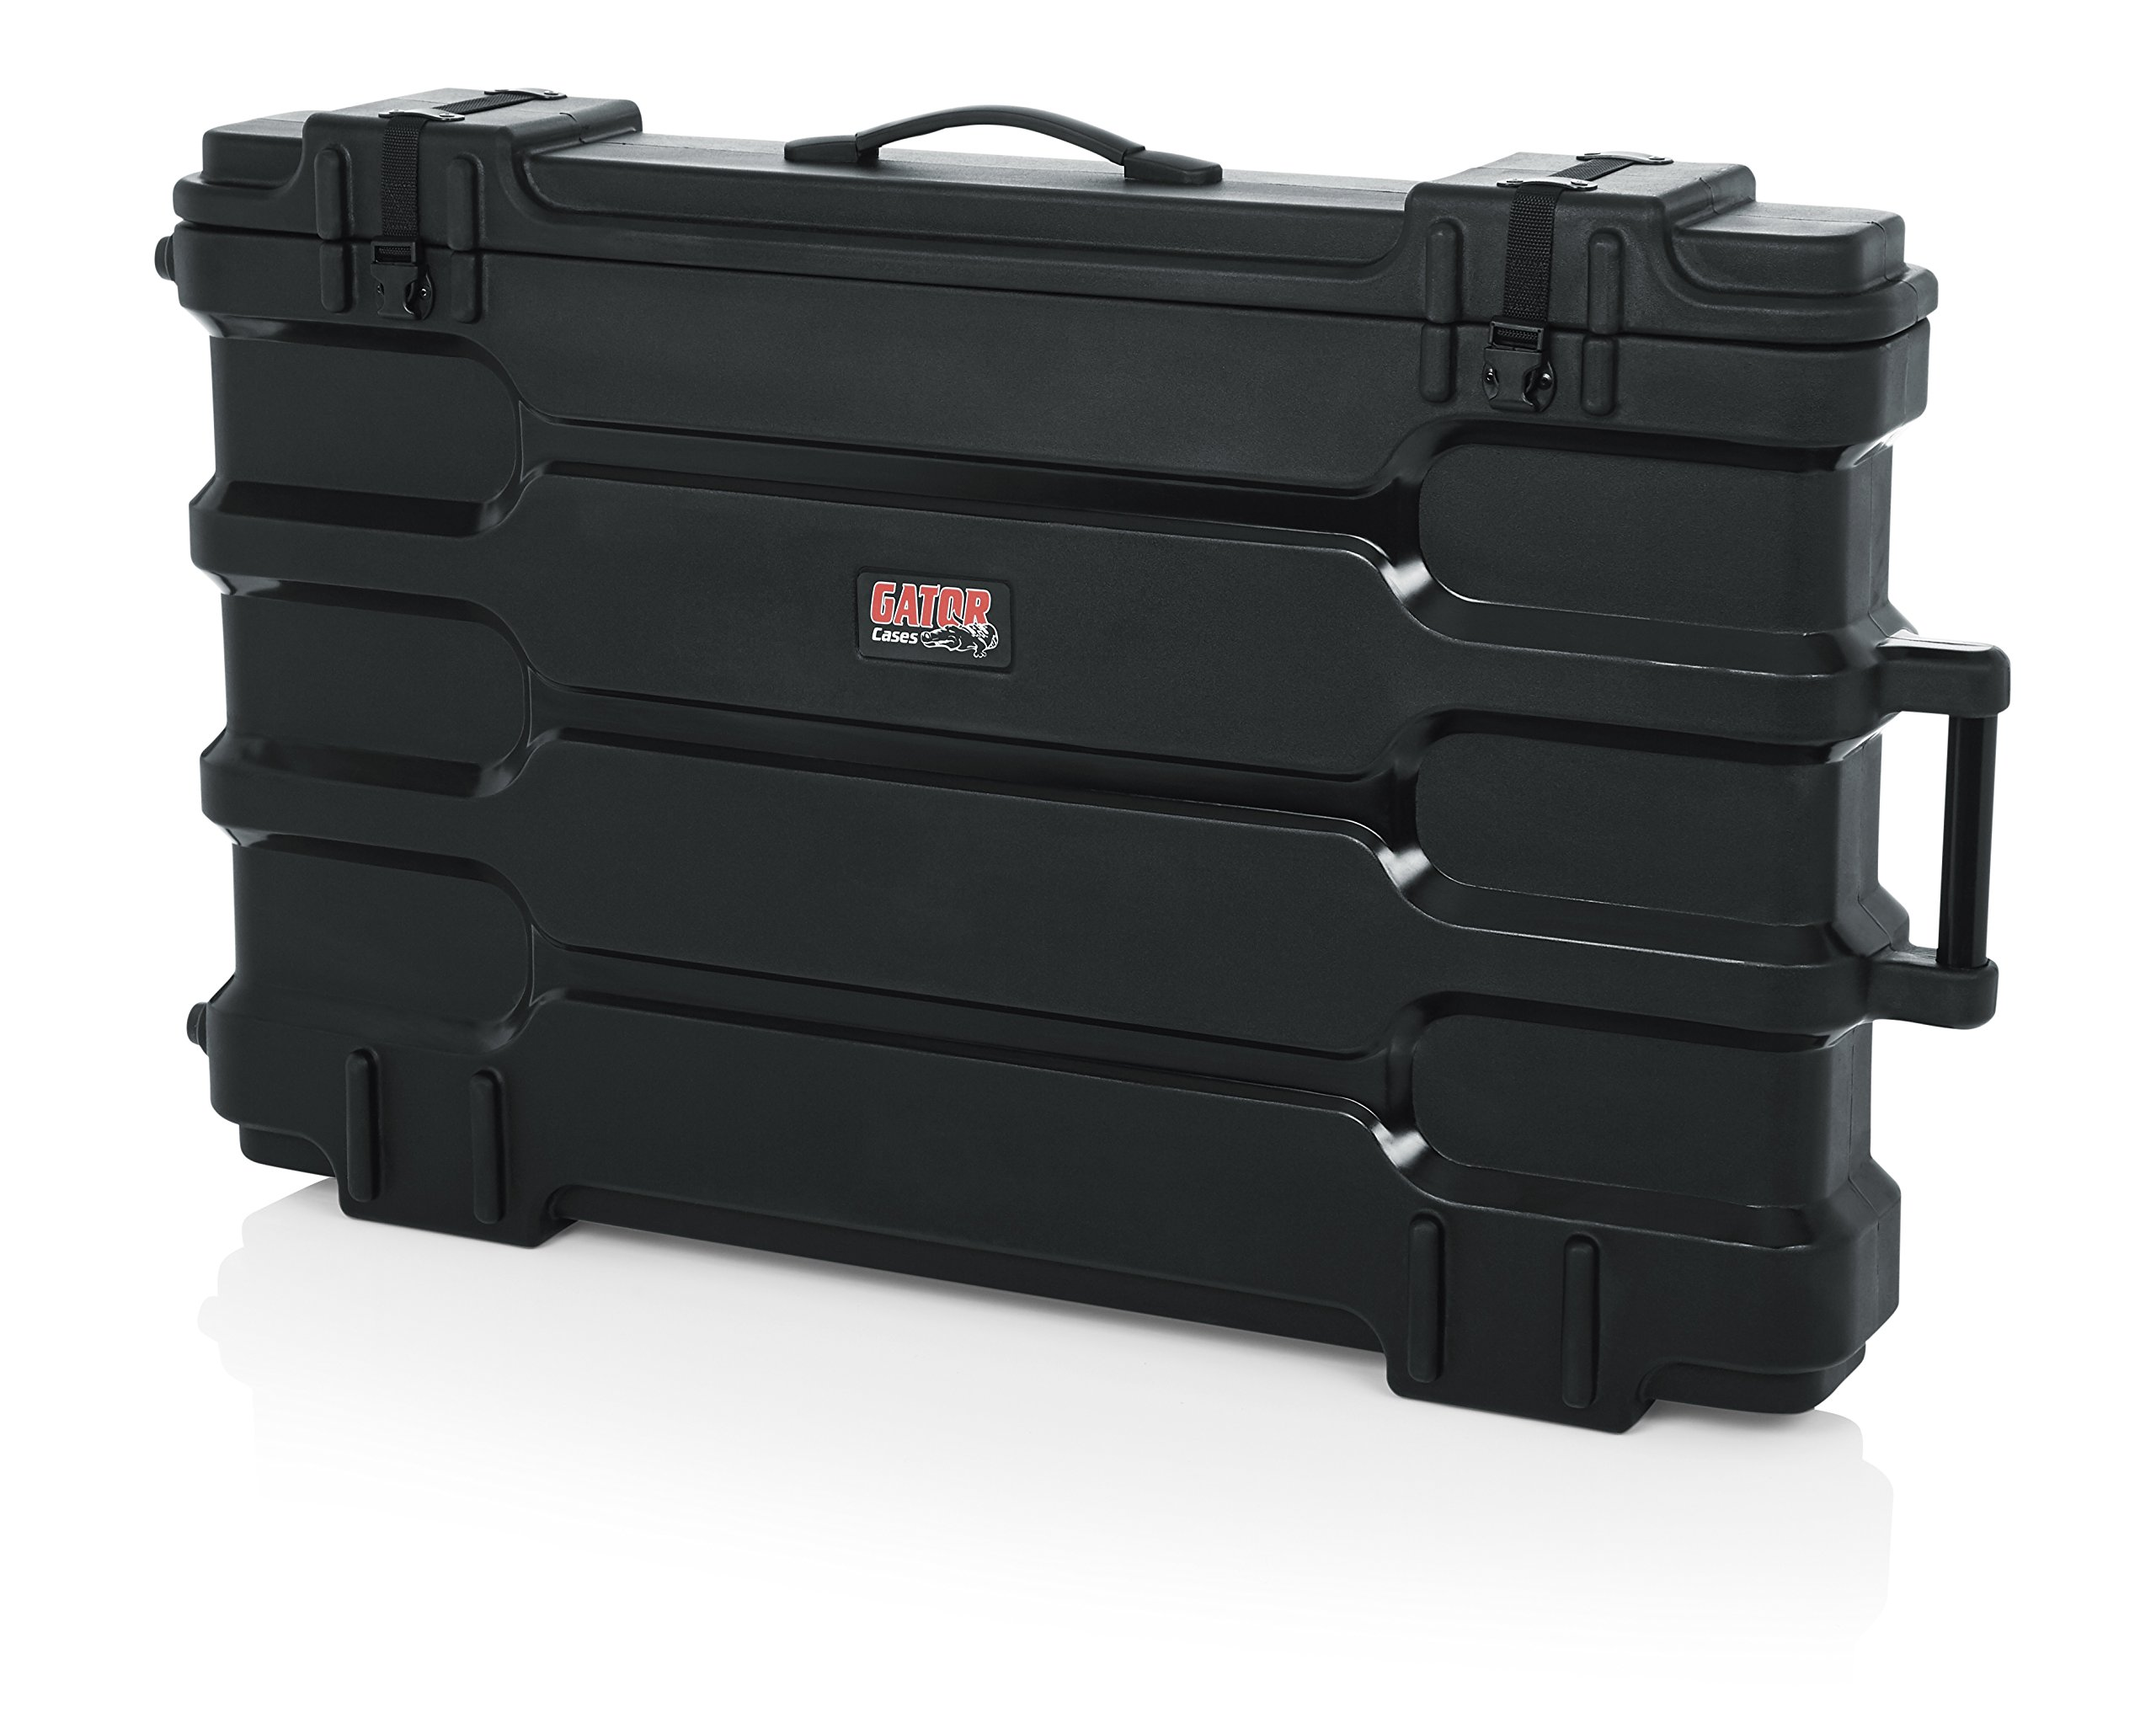 Gator Cases GLED4045ROTO Molded for Transporting LCD/LED TV Screens & Monitors Between 40-45'' Screens